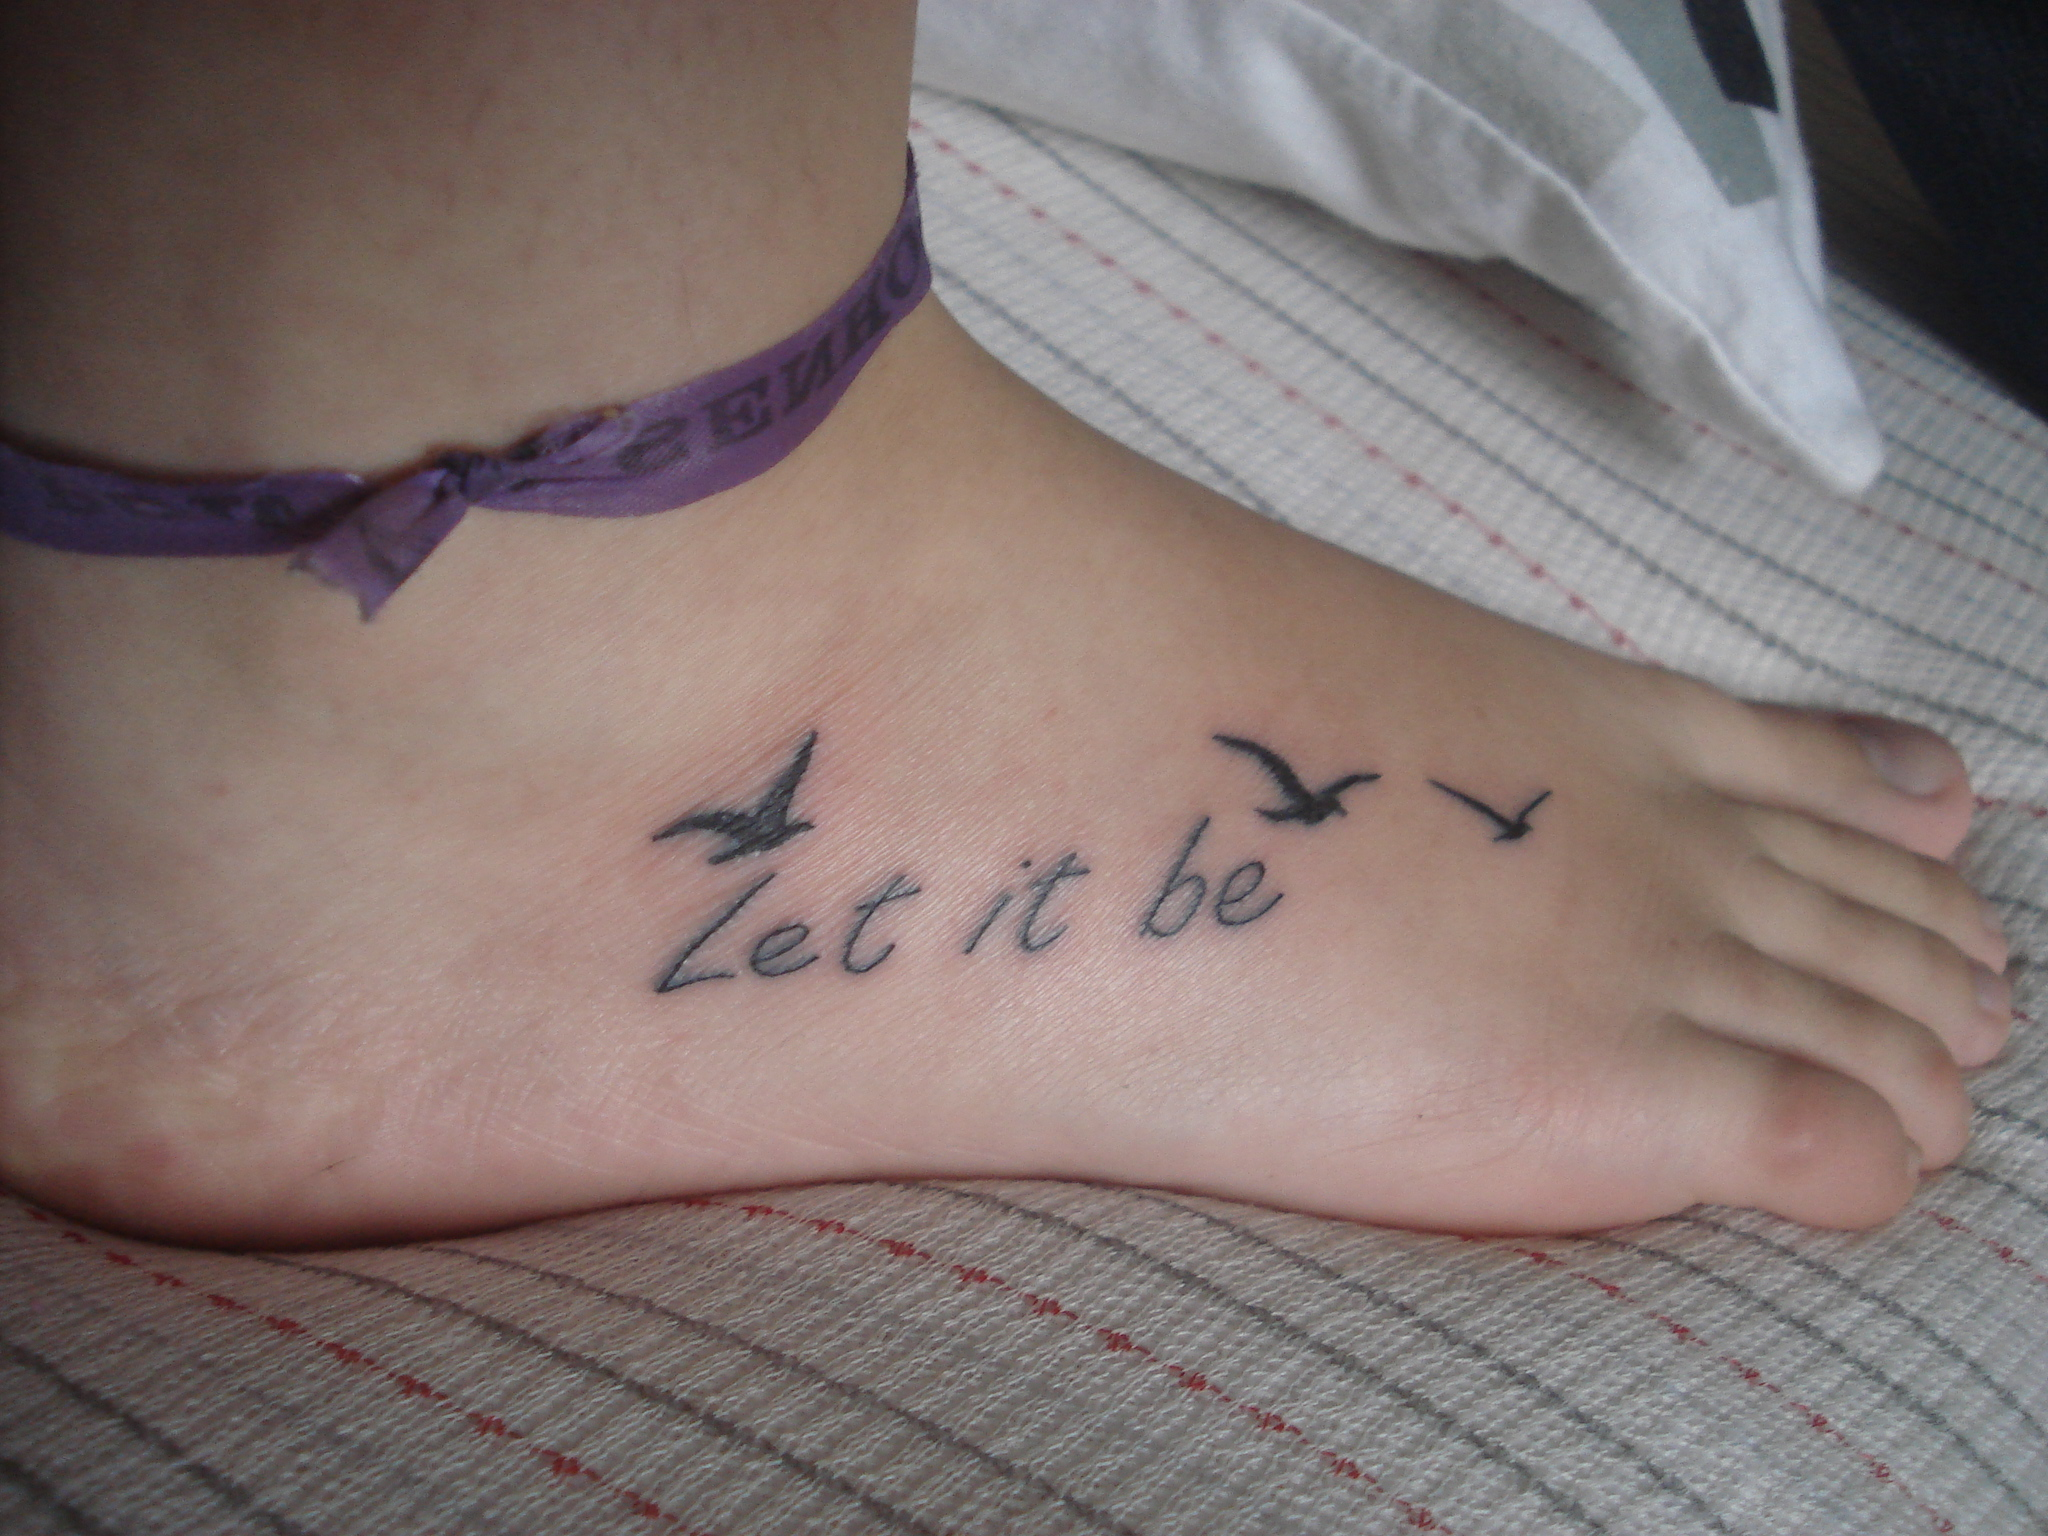 Tattoos: The art of drawing imagination! 4